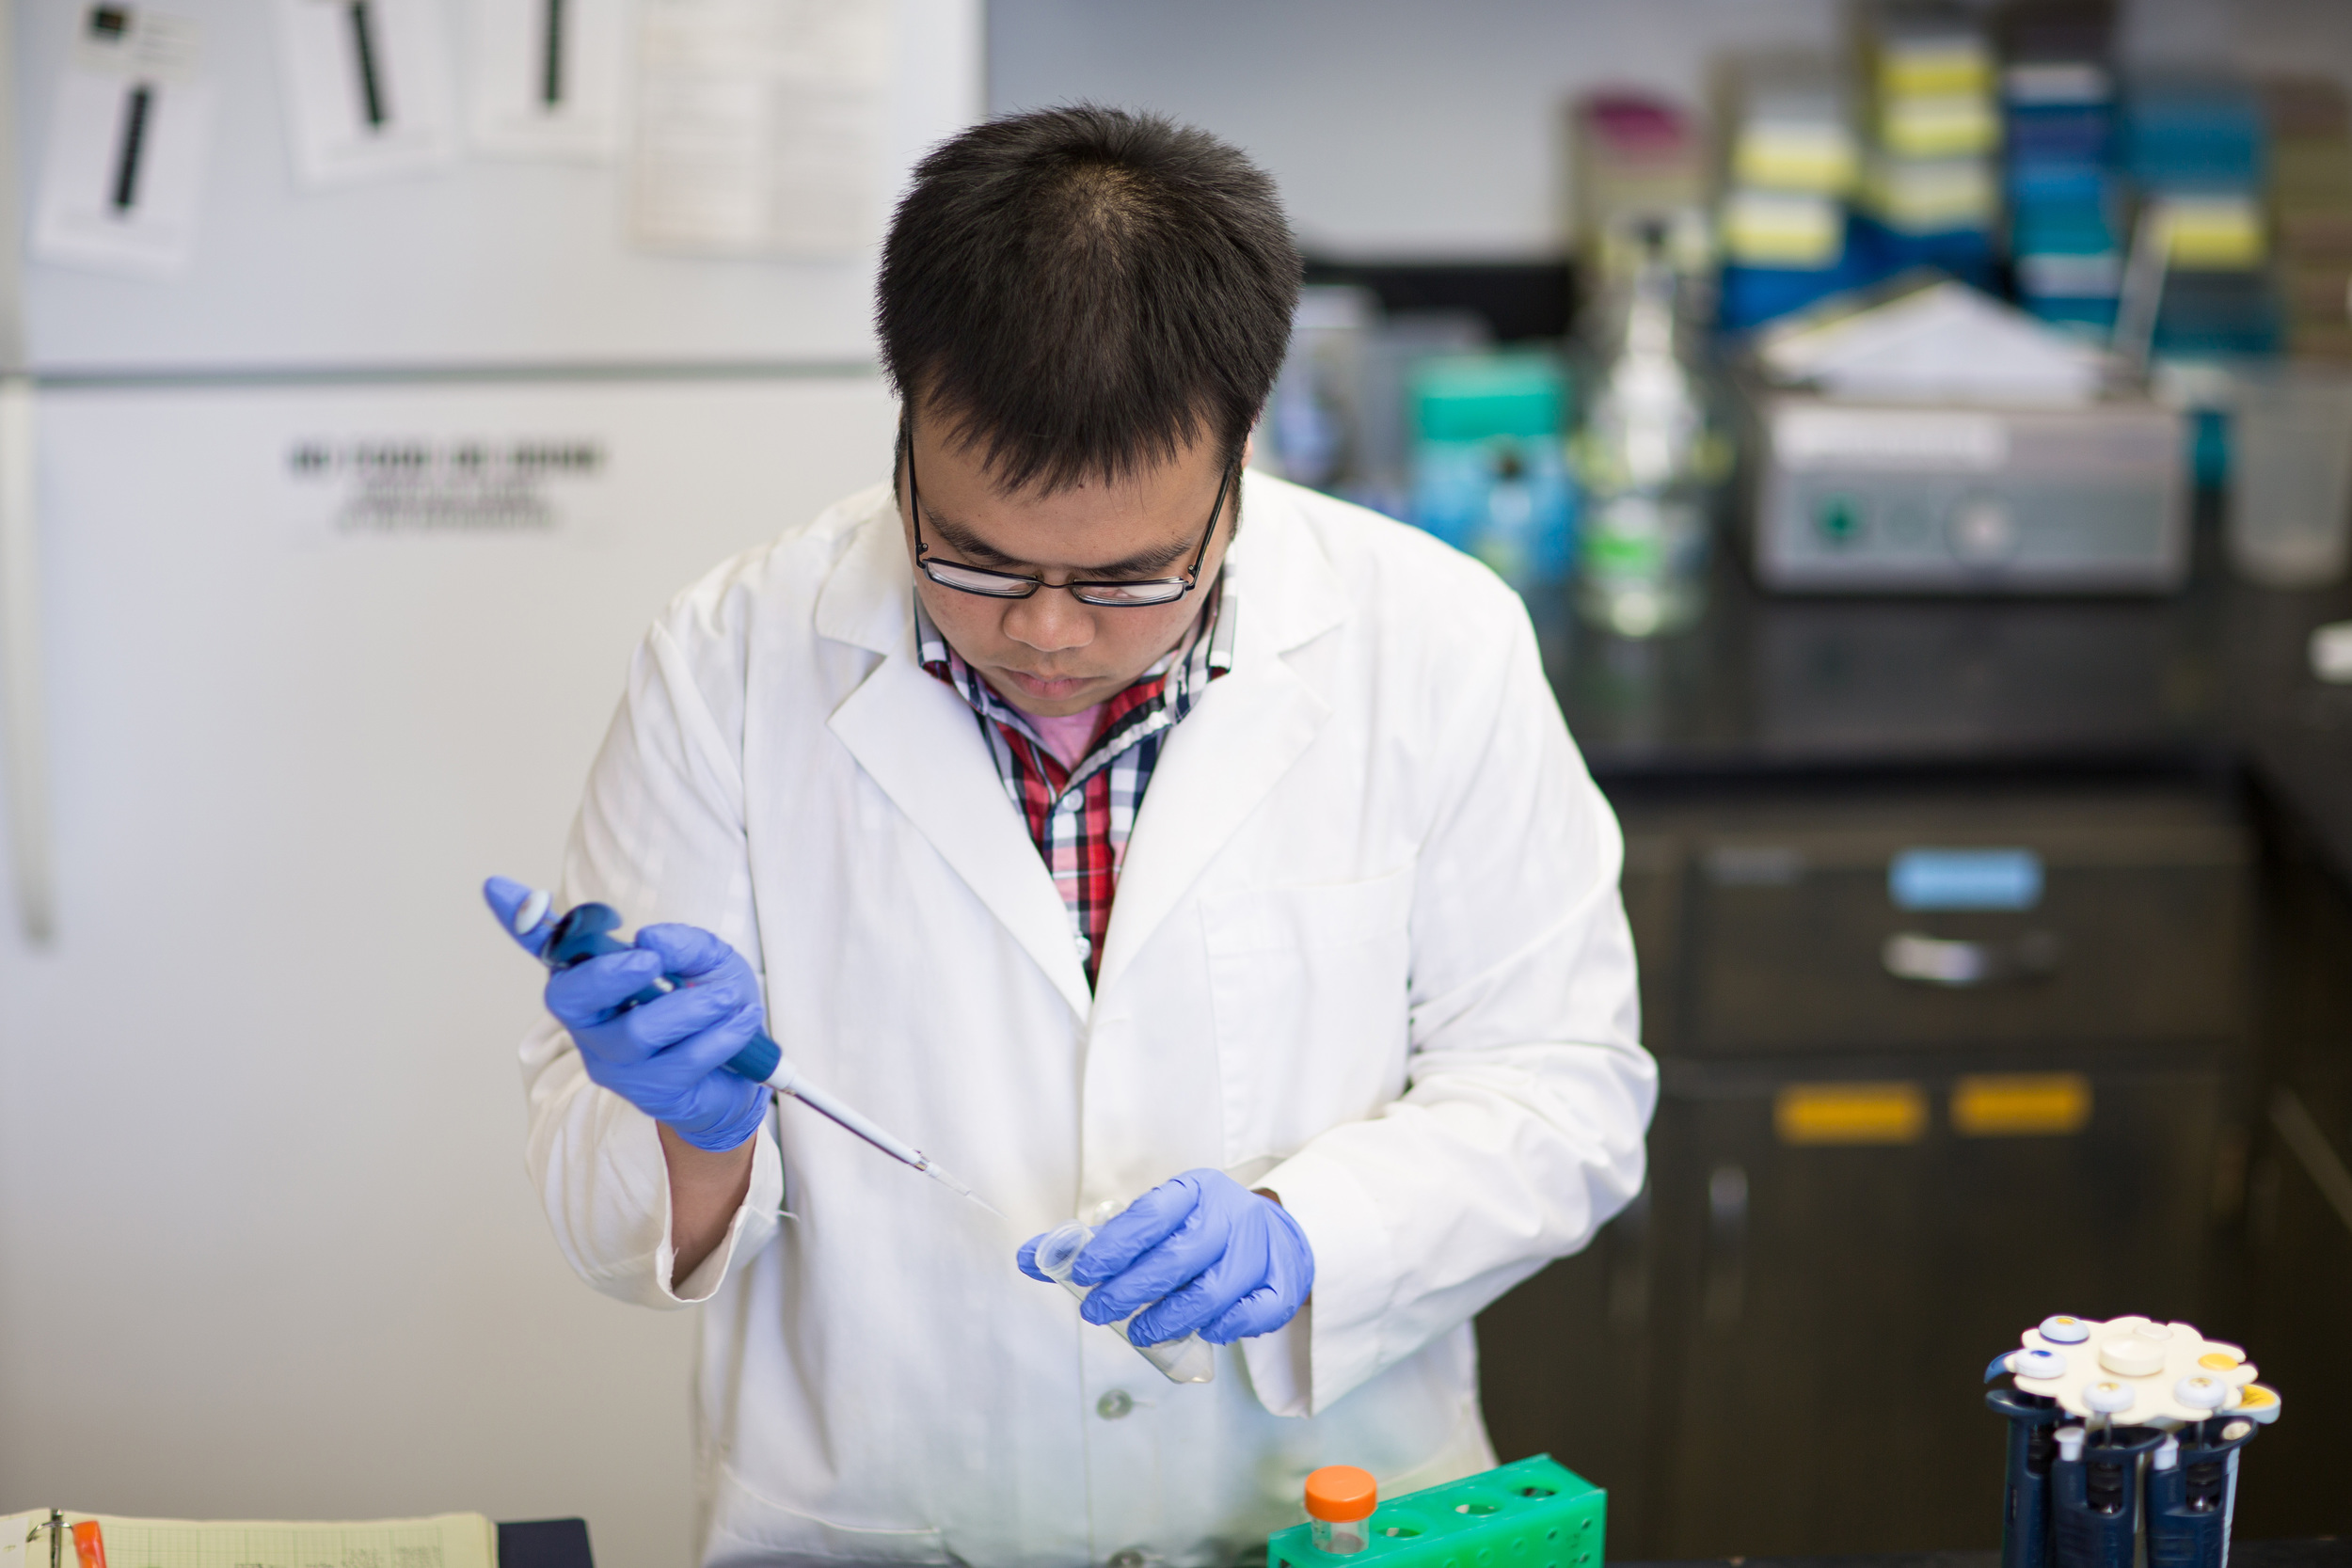 The Bay Area is home to some of the nation's top biotech companies — a major advantage for USF students, who have many opportunities to connect with potential employers (Photo: University of San Francisco)